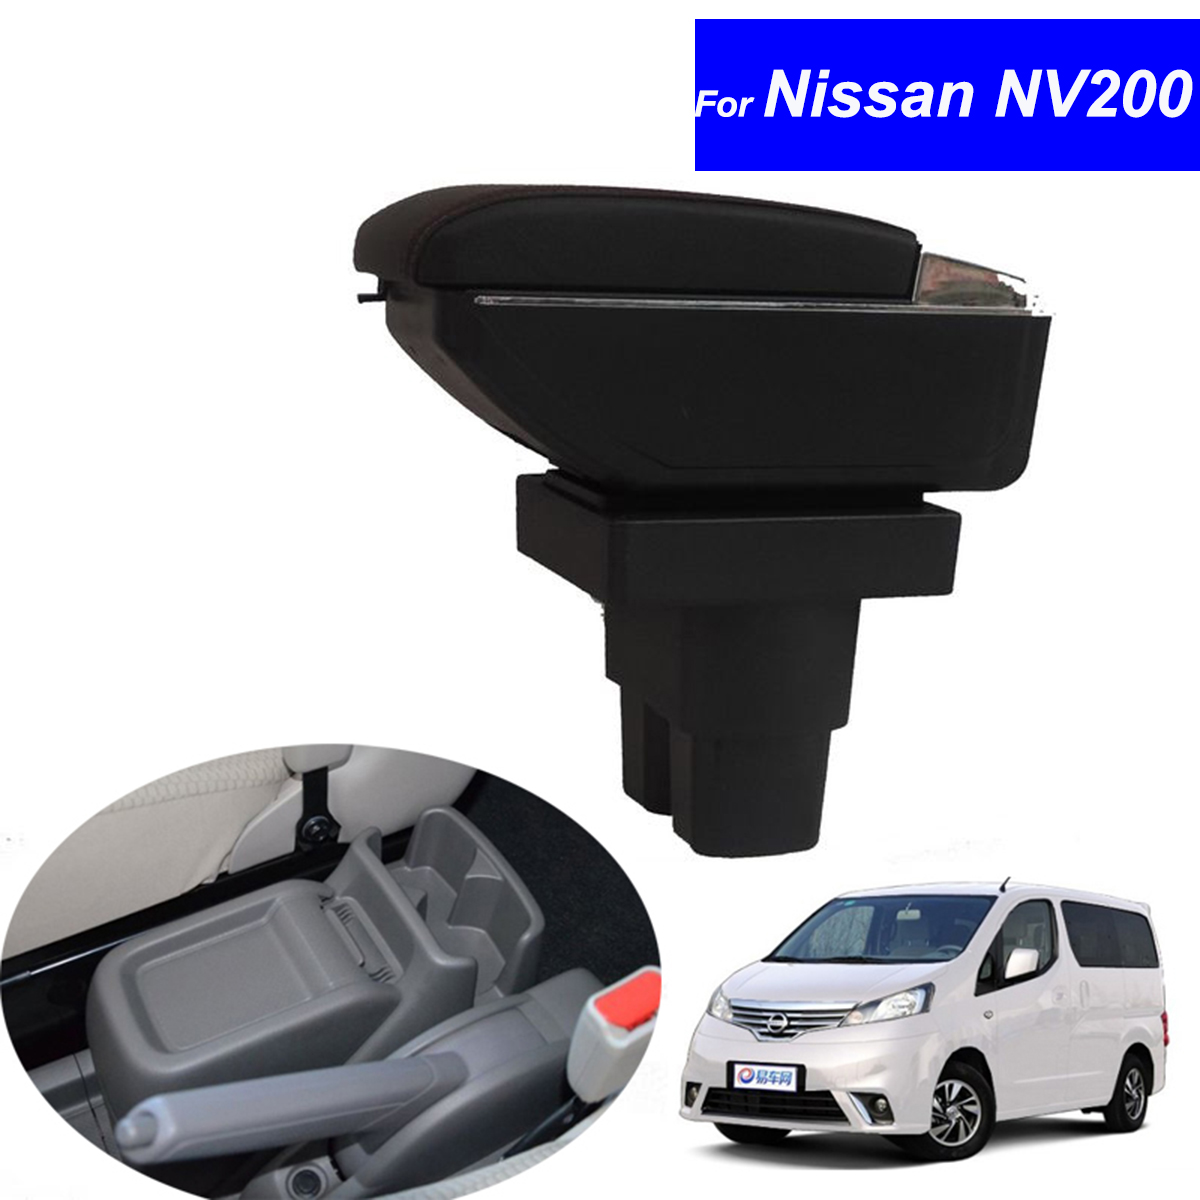 Leather Car Center Console Armrests Storage Box for Nissan NV200 2009 2010 2011 2012 2013 2014 2015 2016 Free Shipping car rear trunk security shield shade cargo cover for nissan qashqai 2008 2009 2010 2011 2012 2013 black beige